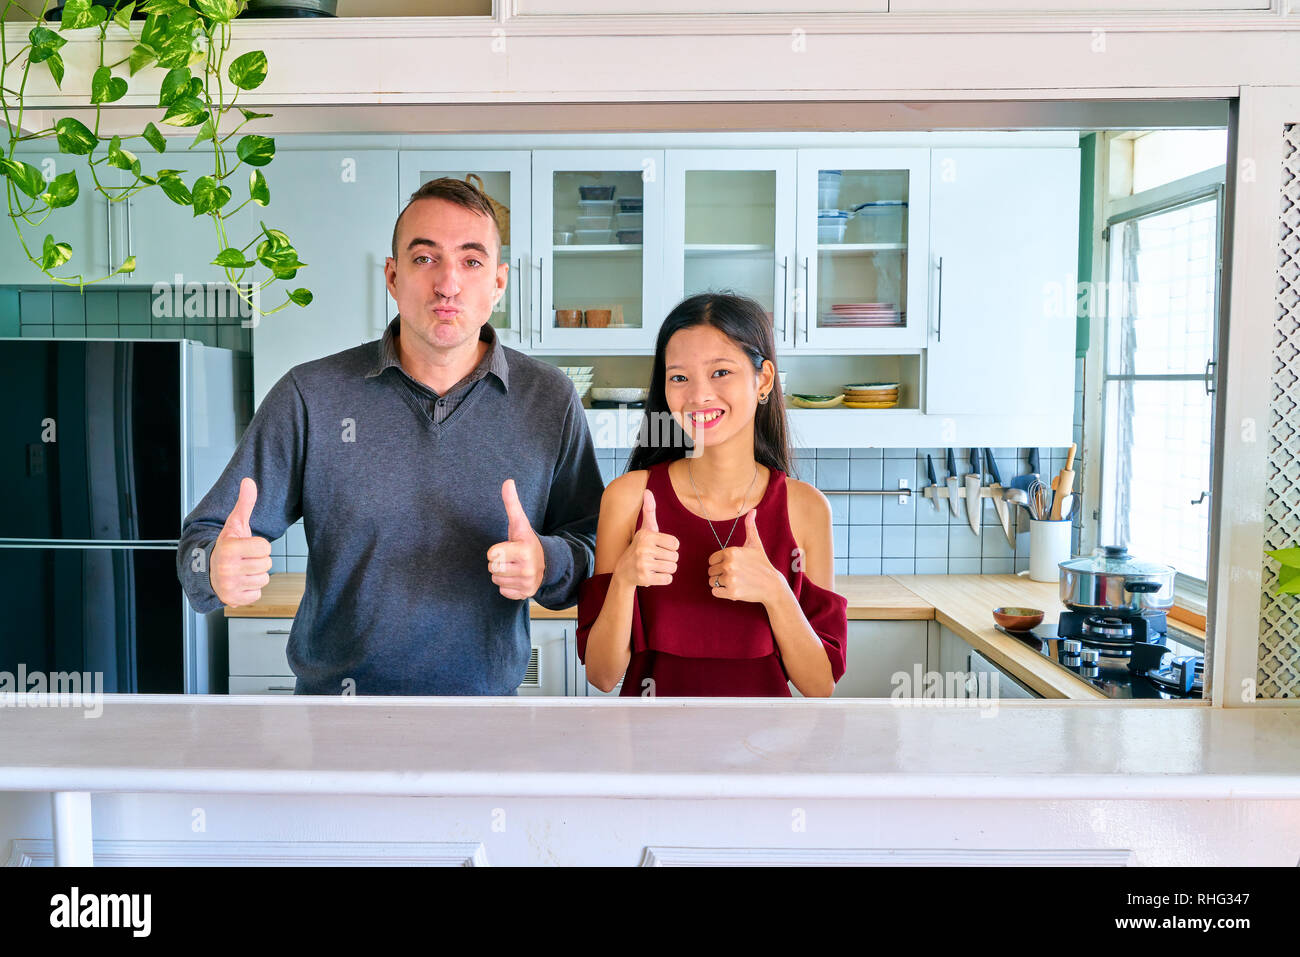 Lovely couple posing - thumbs up gesture and smiling young woman - Stock Image